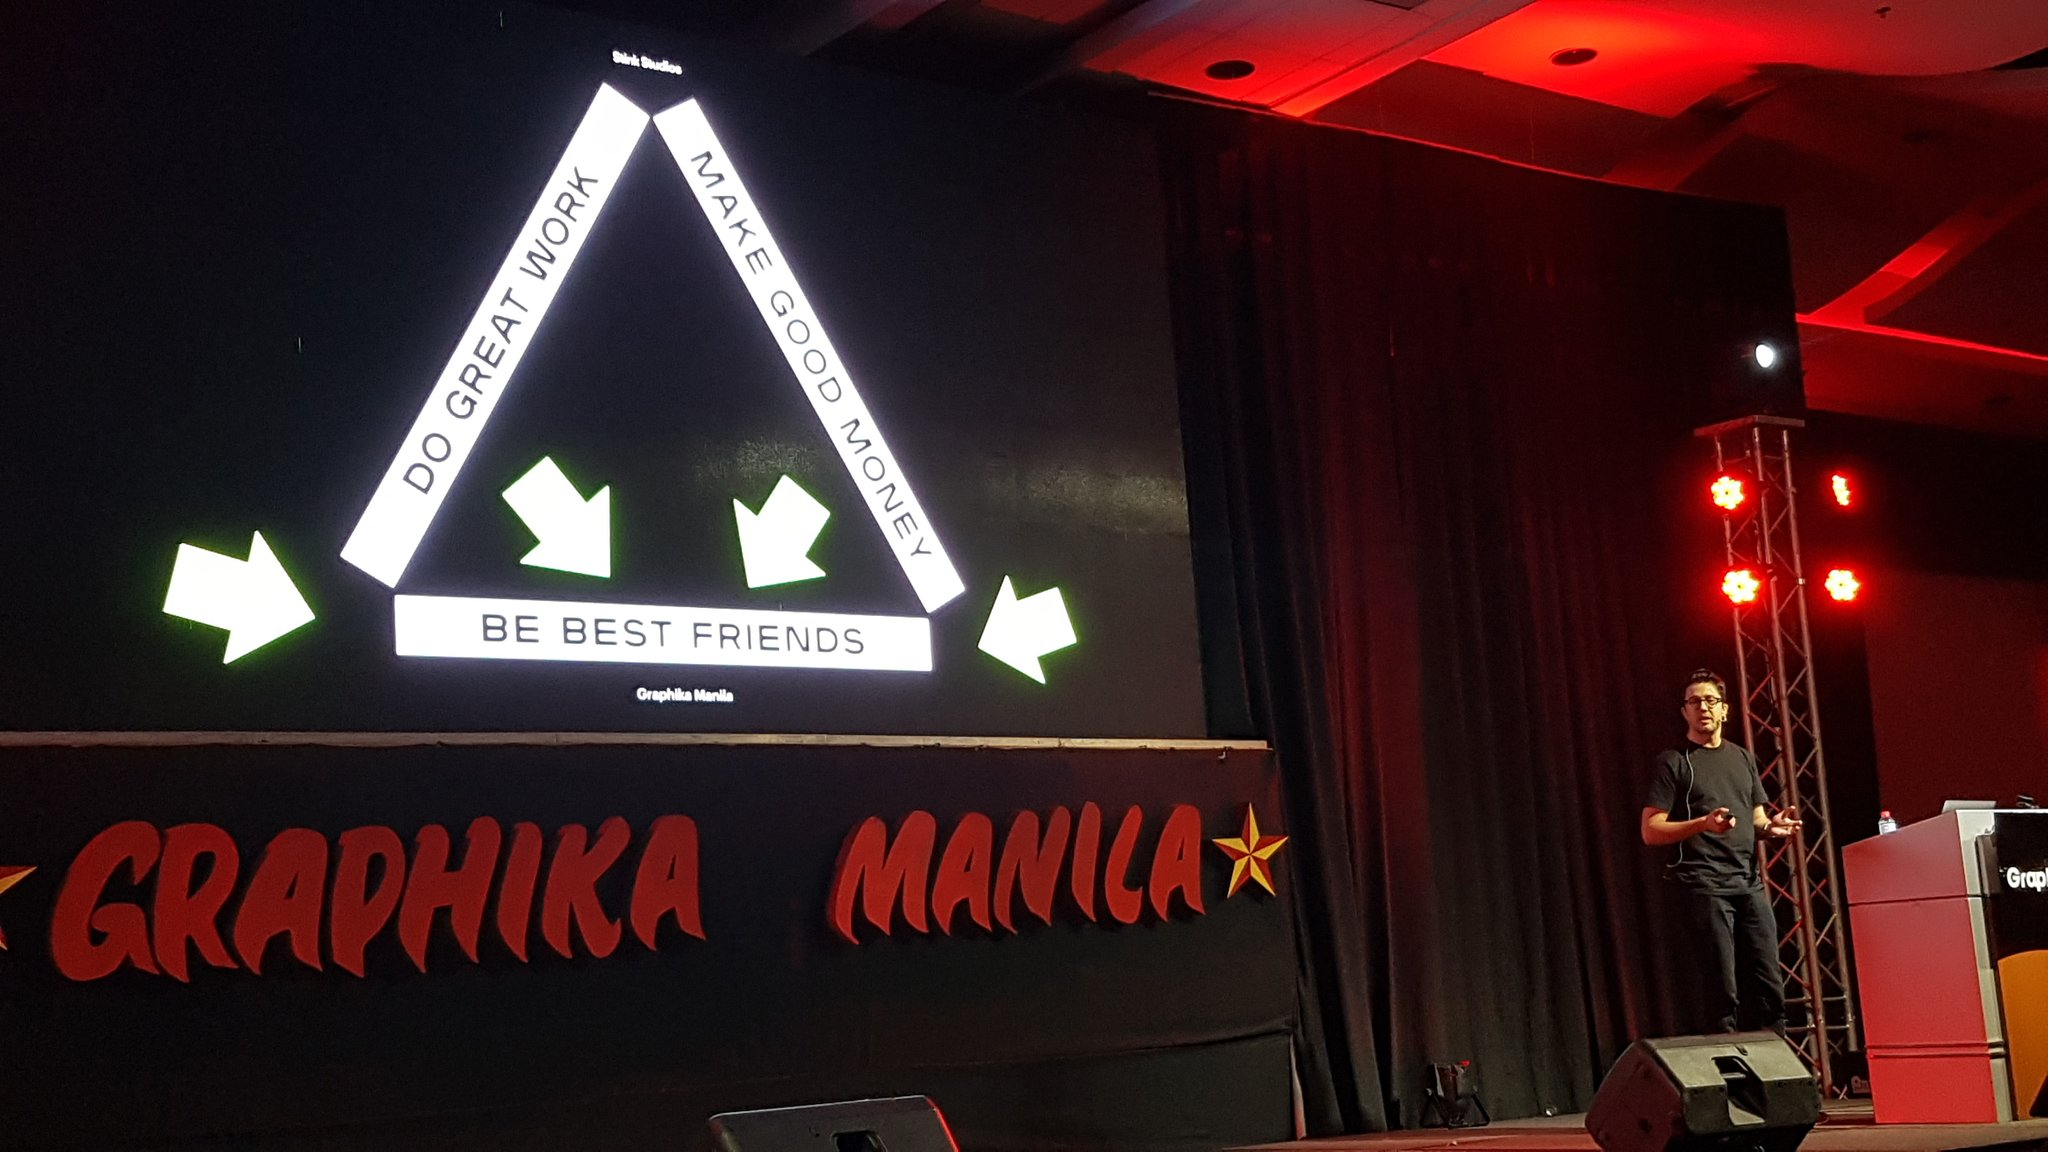 RT @adobomagazine: Ben Hughes, ECD of @stinkstudios shares what's essential for their agency. #GraphikaManila2018 https://t.co/enNjqOCXep